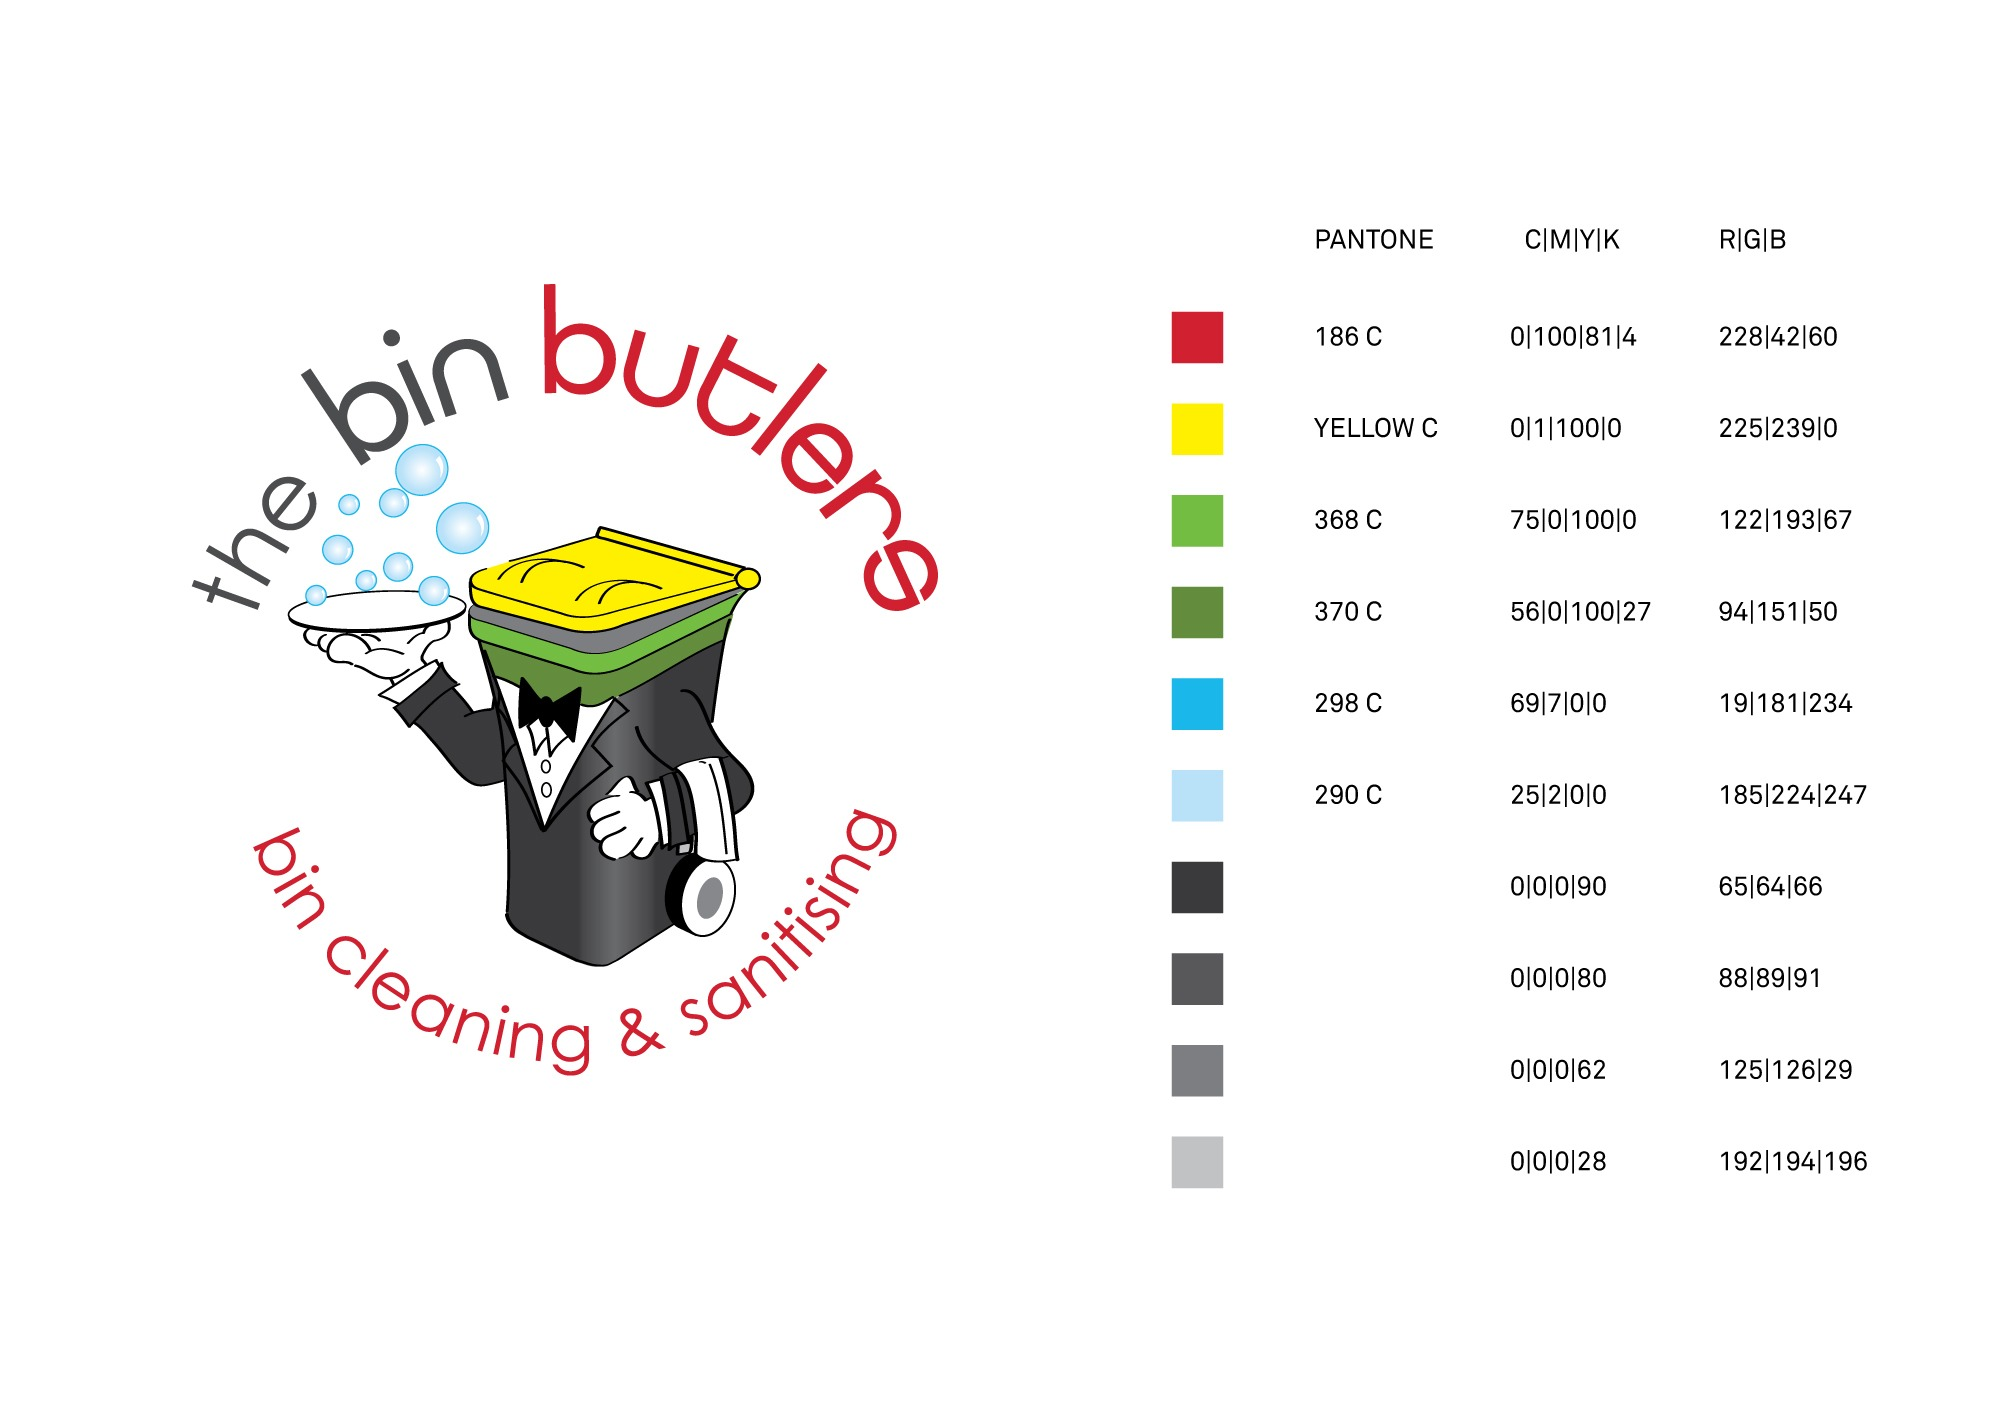 bin-butler-logo-colour-breakdown